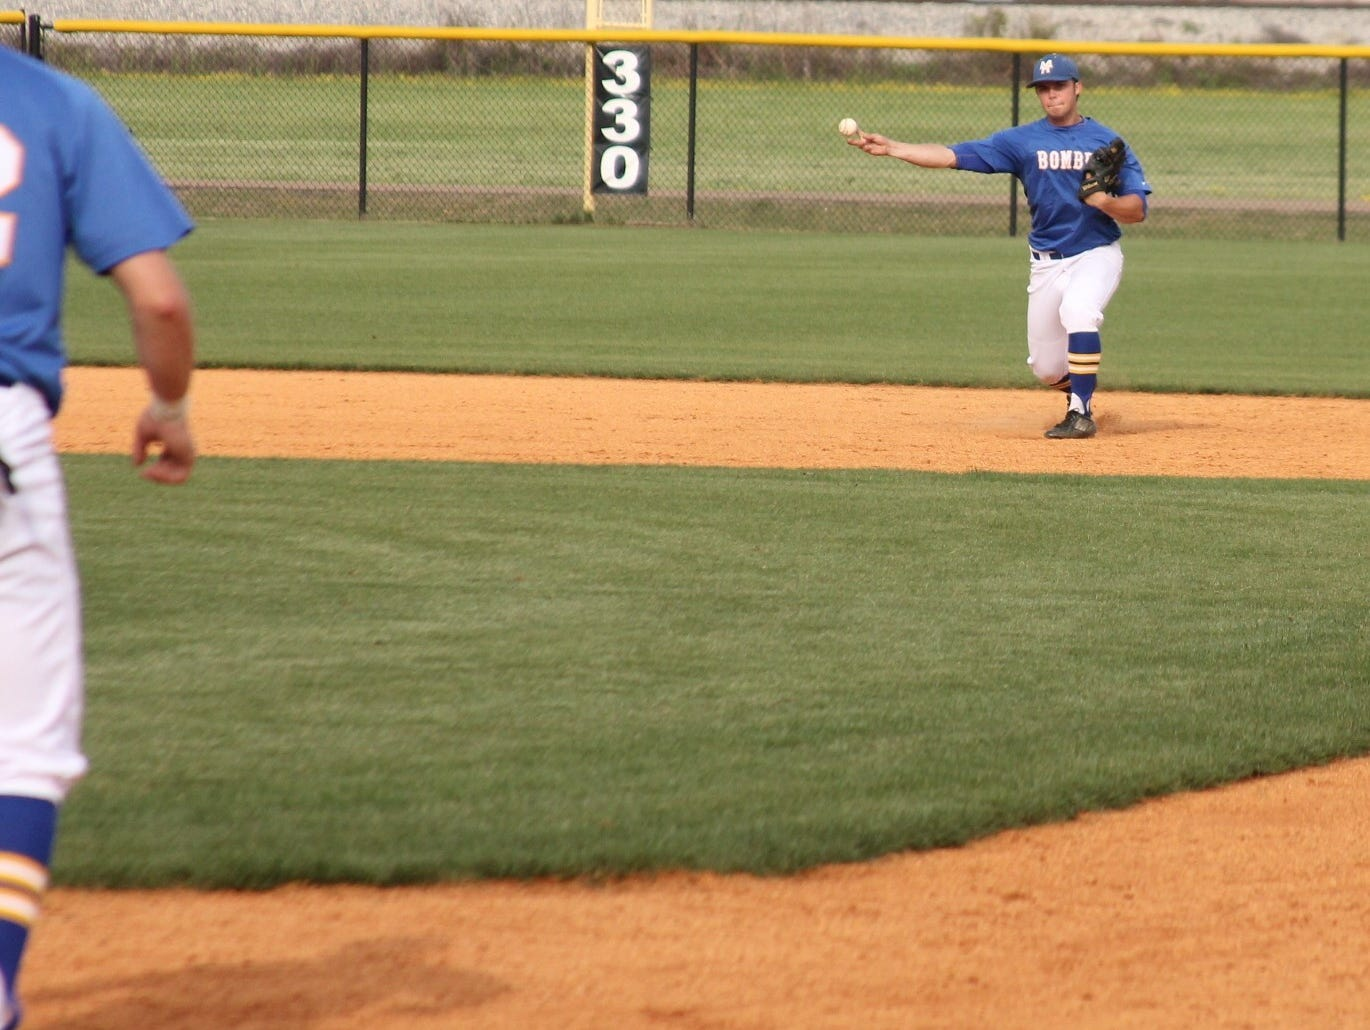 Mountain Home shortstop Macllain Edington throws to first base during the Bombers' 2-0 loss at Marion on Thursday.